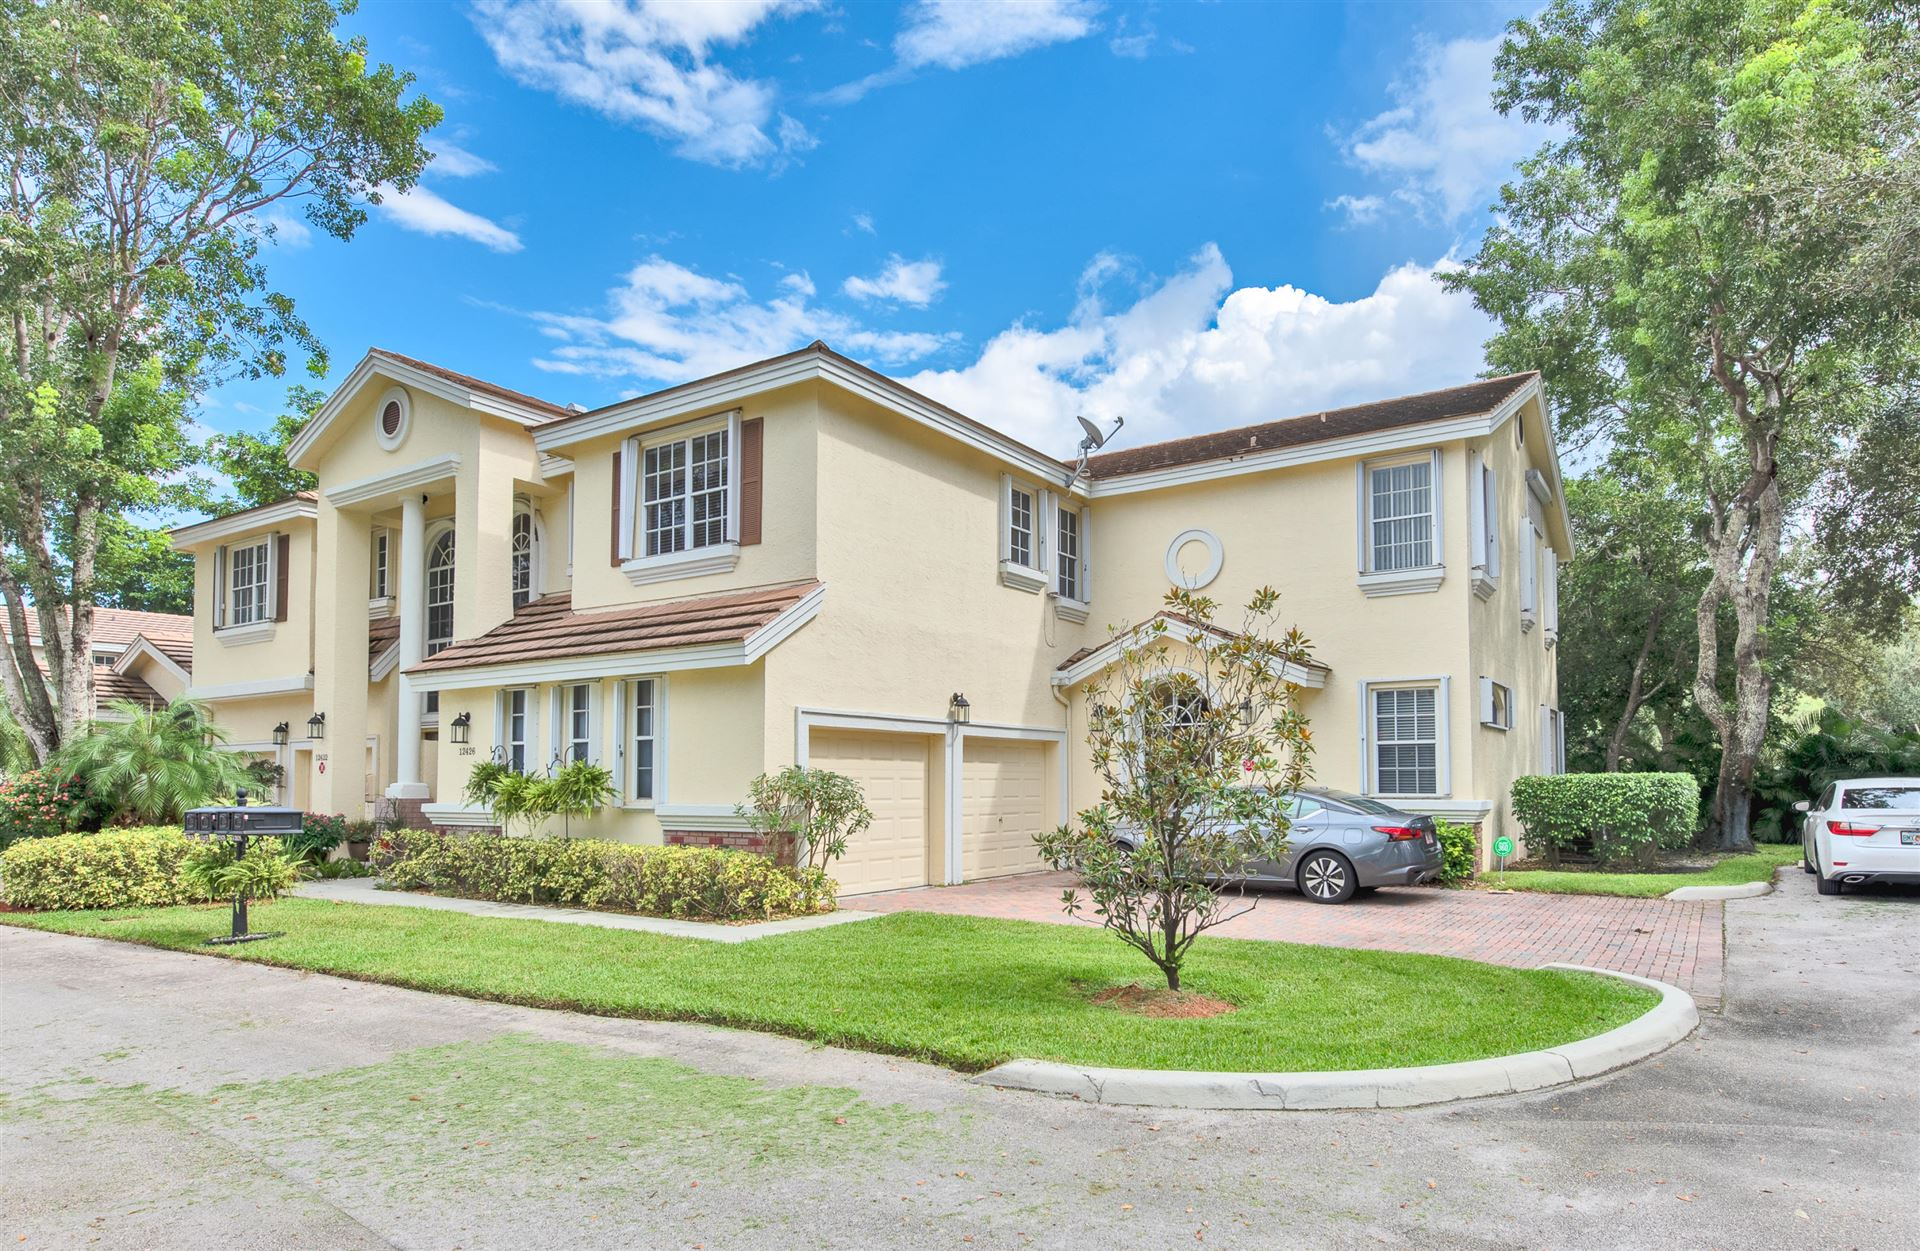 Photo of 12426 NW 10th Court #C-12, Coral Springs, FL 33071 (MLS # RX-10662745)